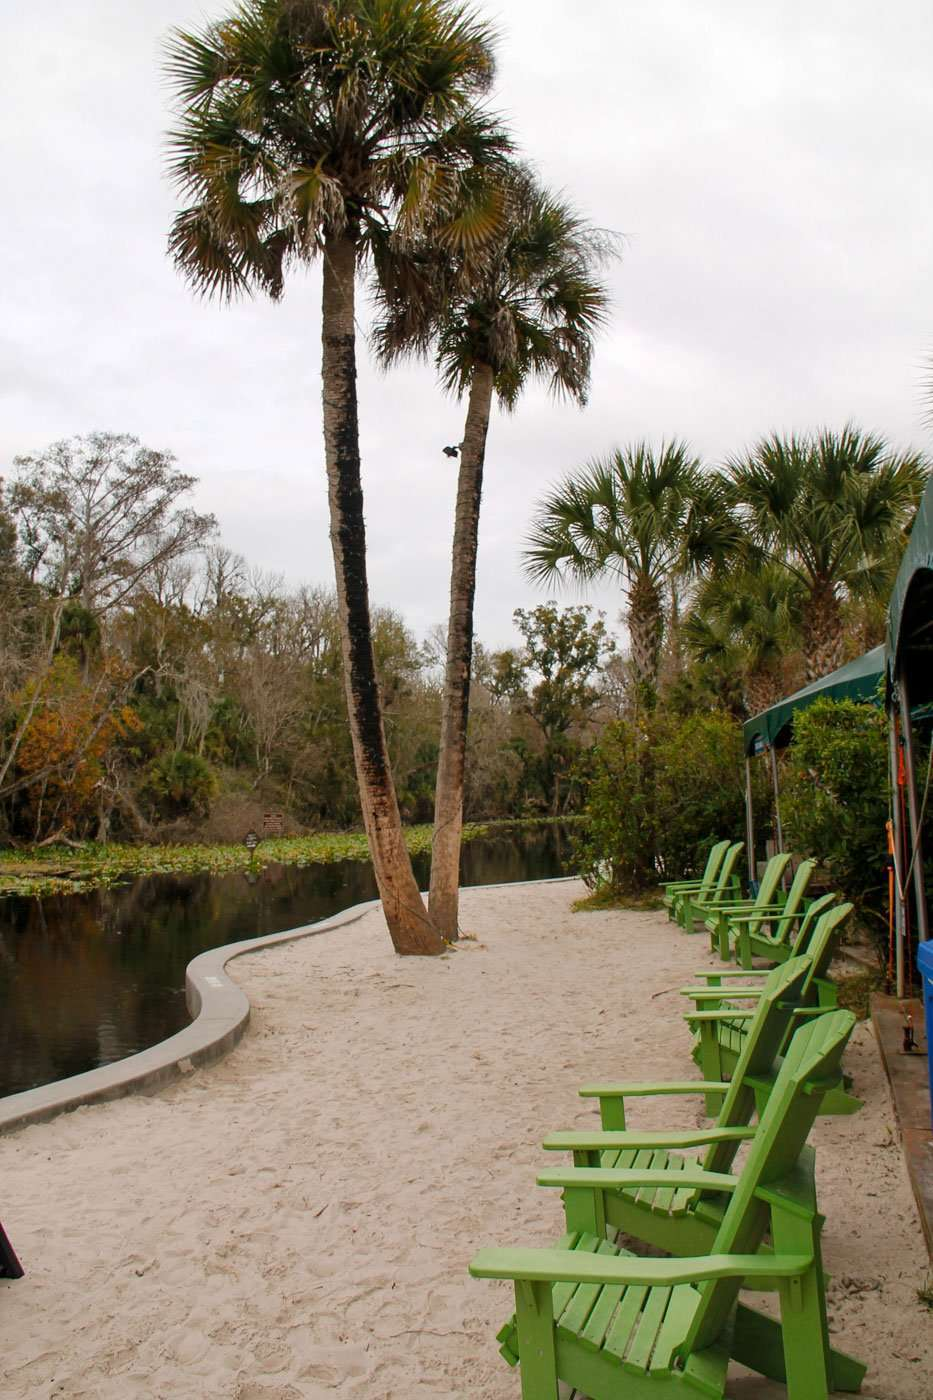 palm trees along Wekiva River